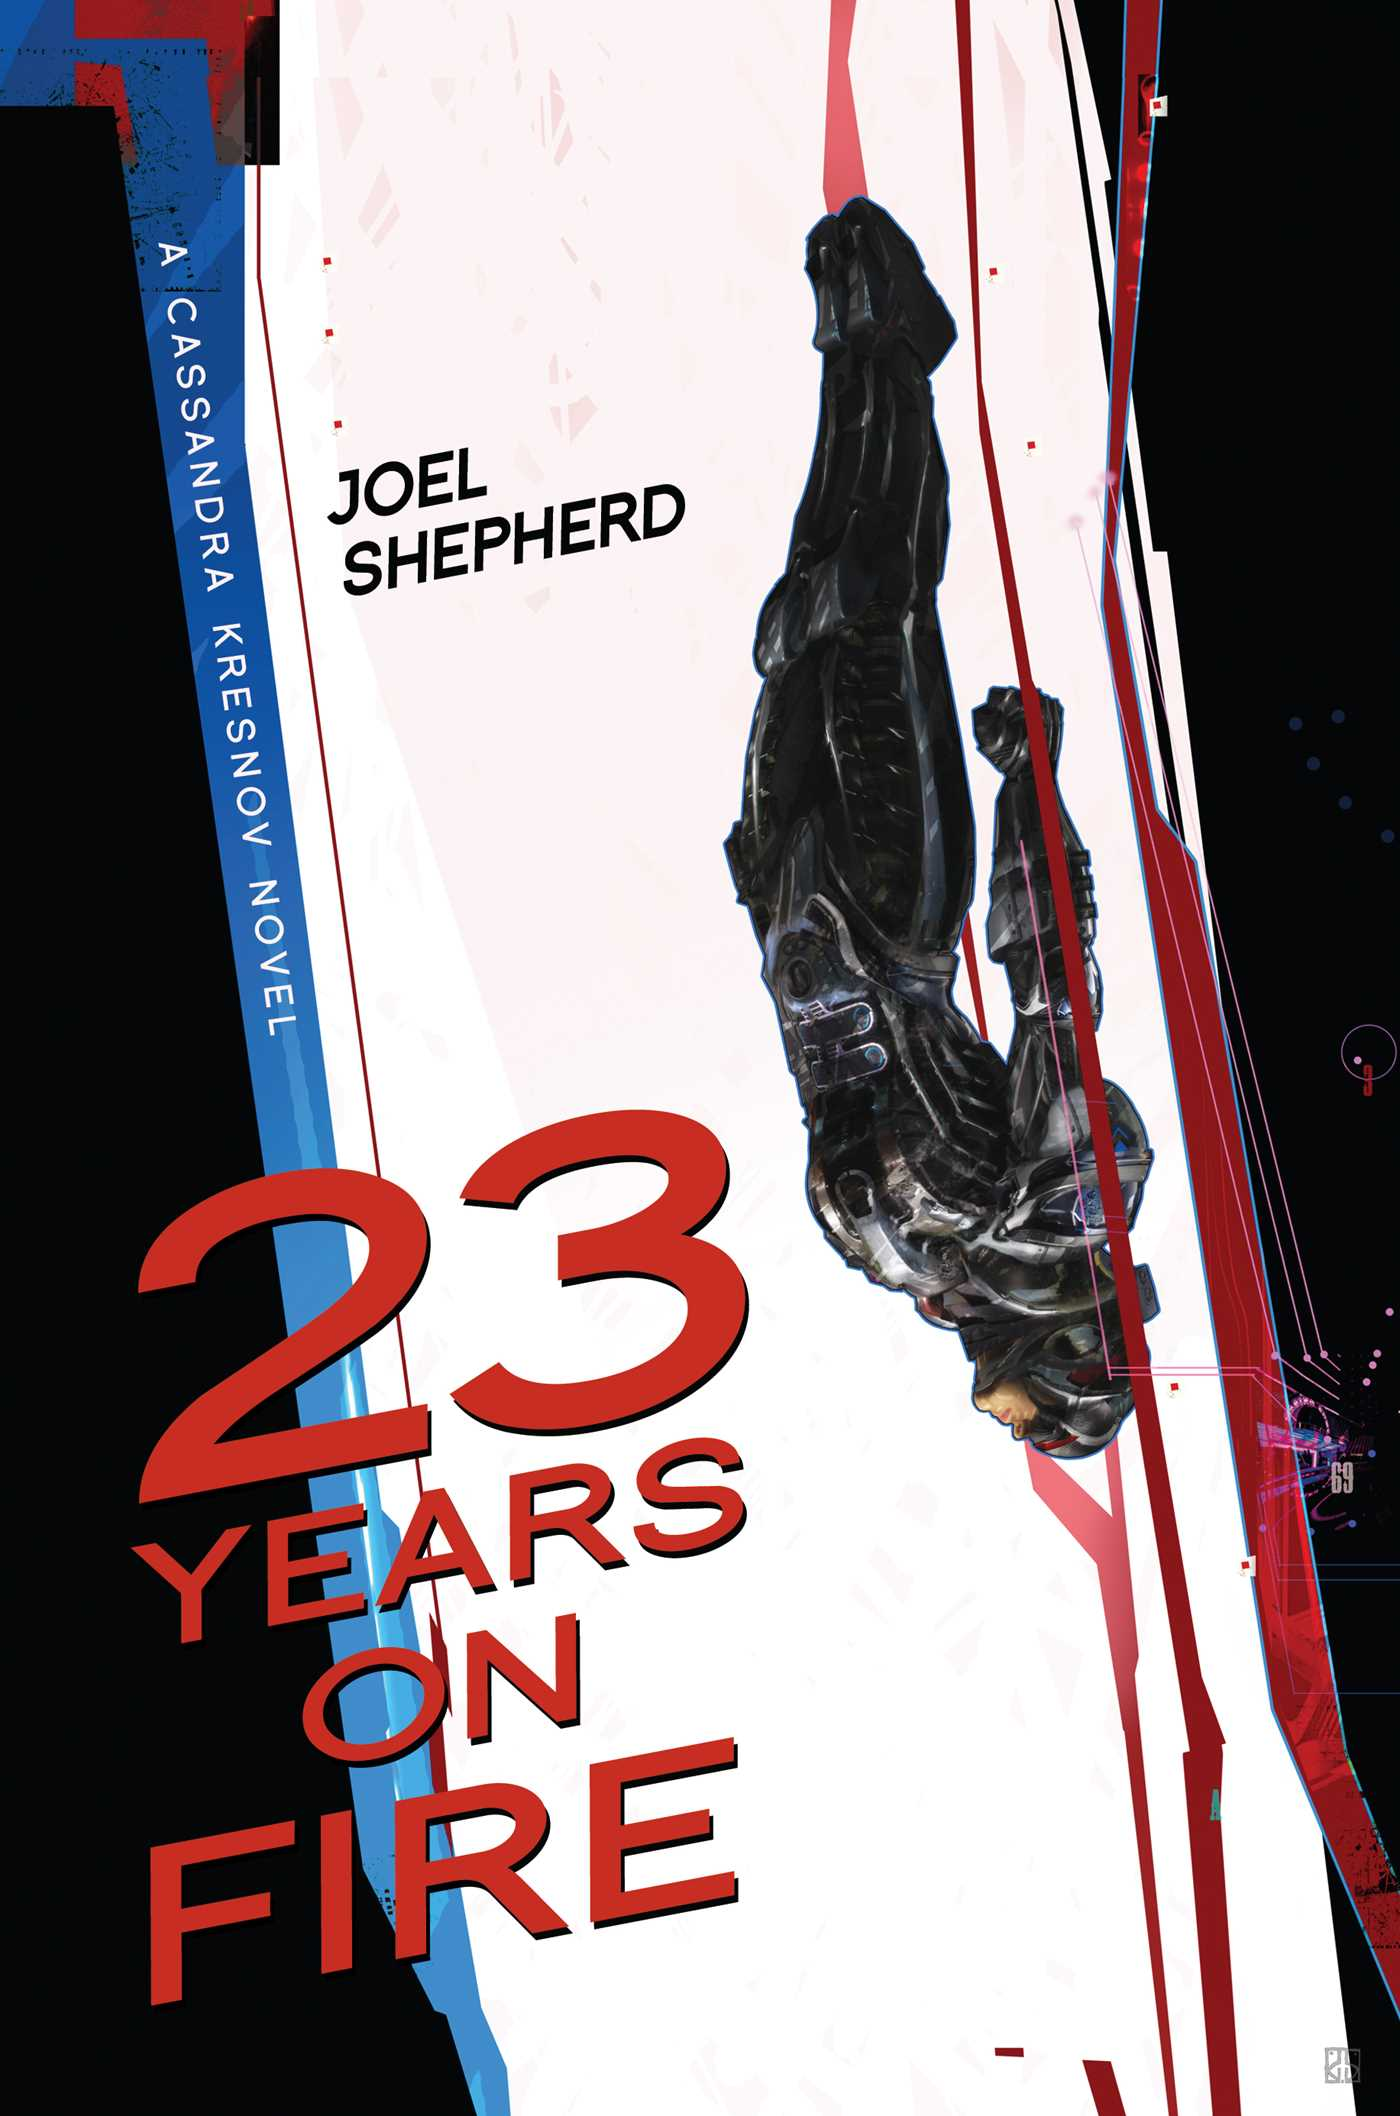 Shepherd, Joel - 23 Years on Fire introducing the Compulsive Narrative Syndrome.